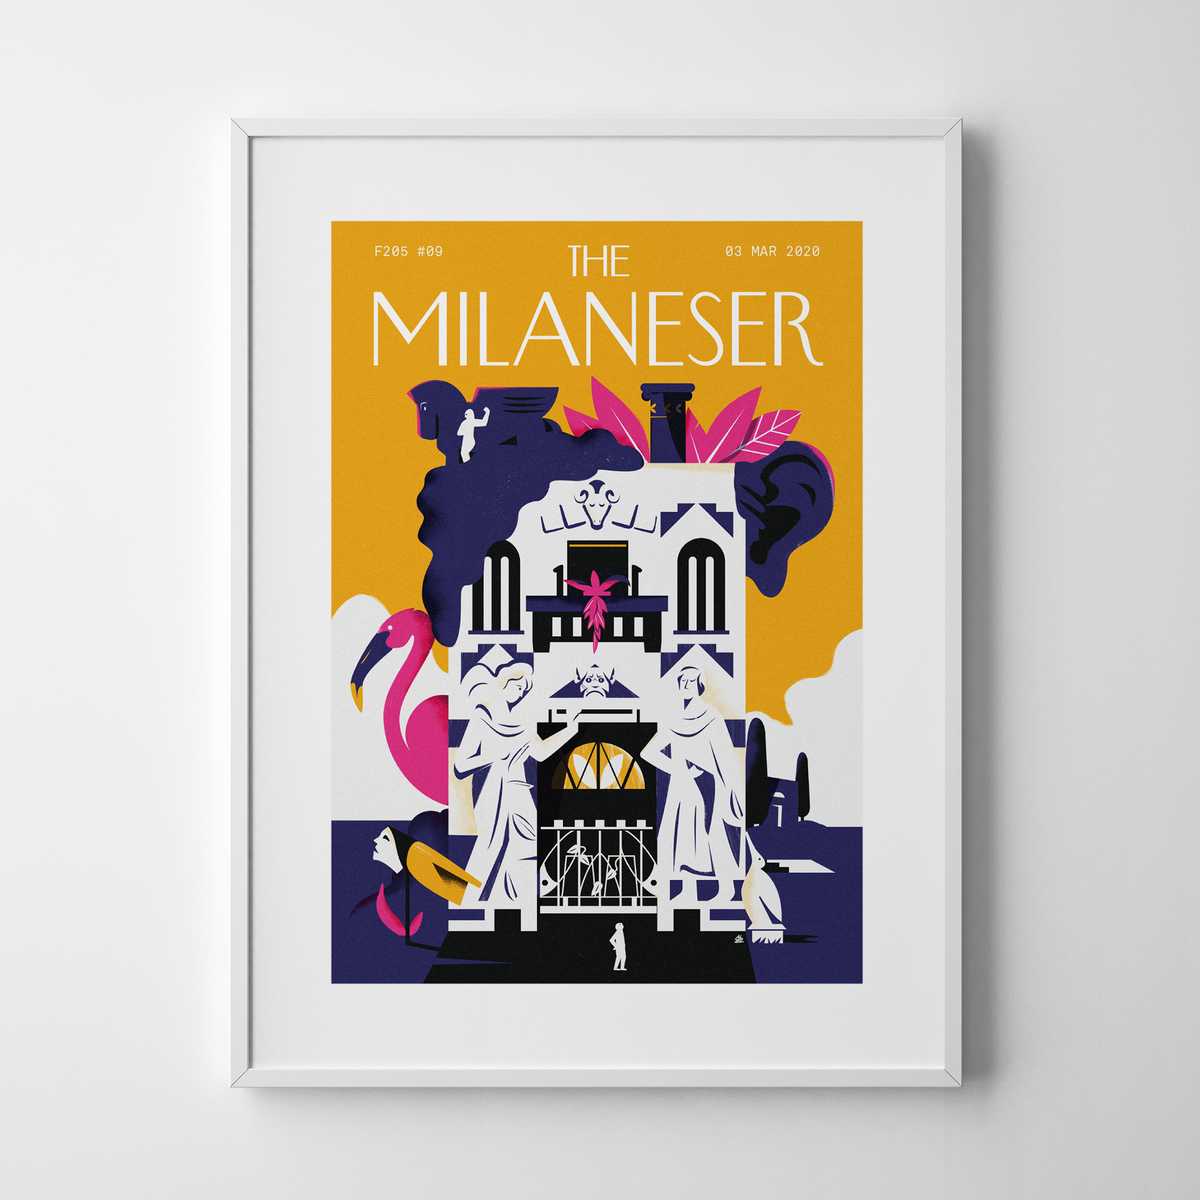 Image of The Milaneser #09